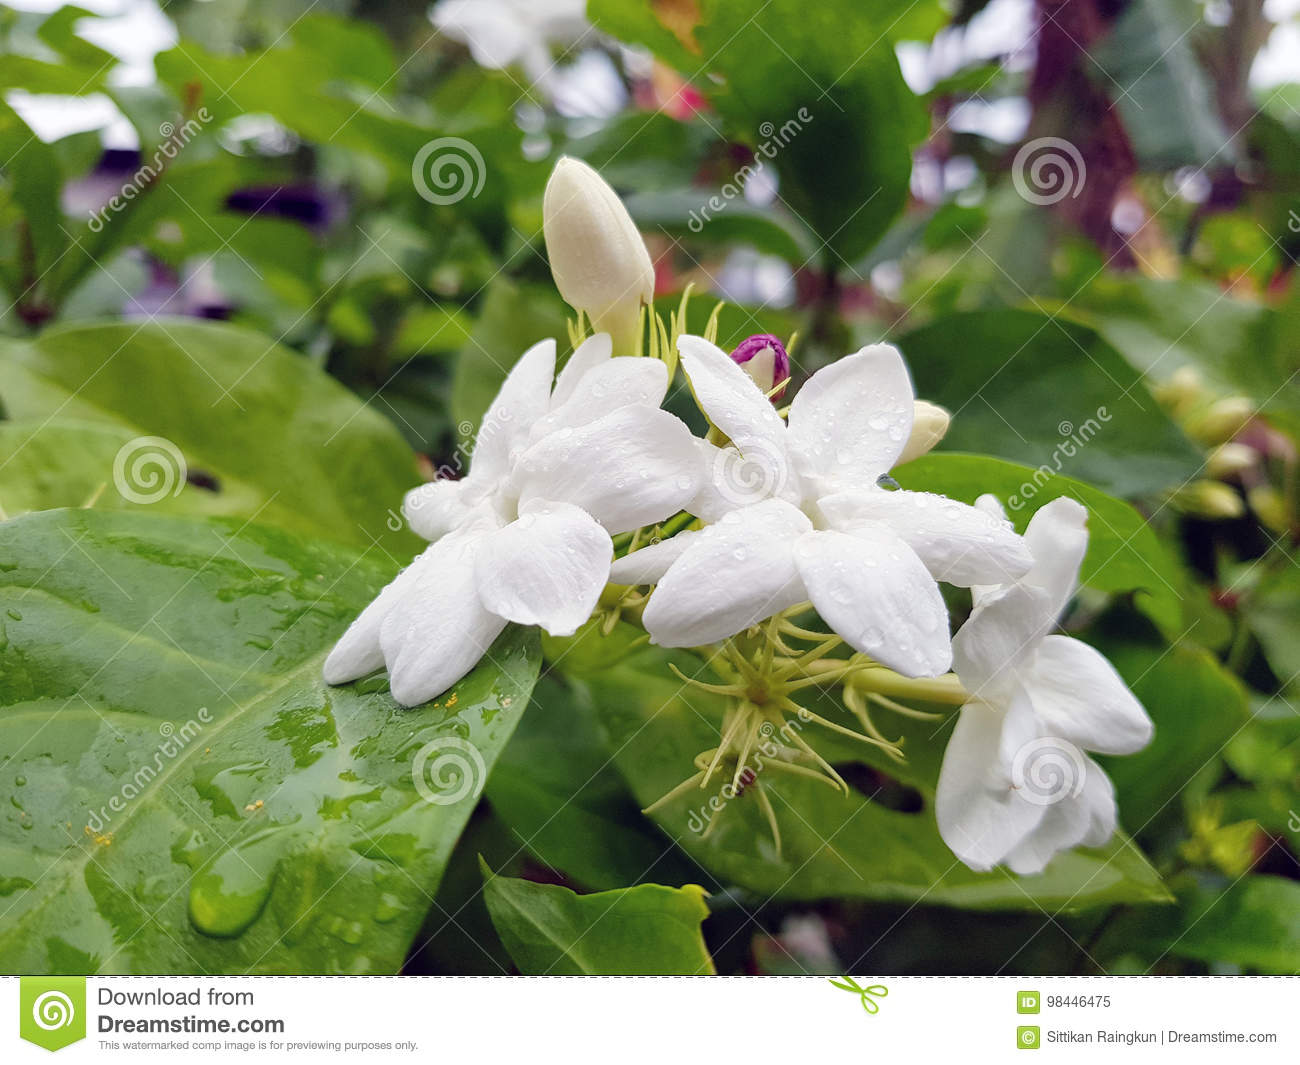 Bush branch with white flowers of jasmine stock image image of bush branch with white flowers of jasminewhite aroma flowers of jasminemother x27s day concept izmirmasajfo